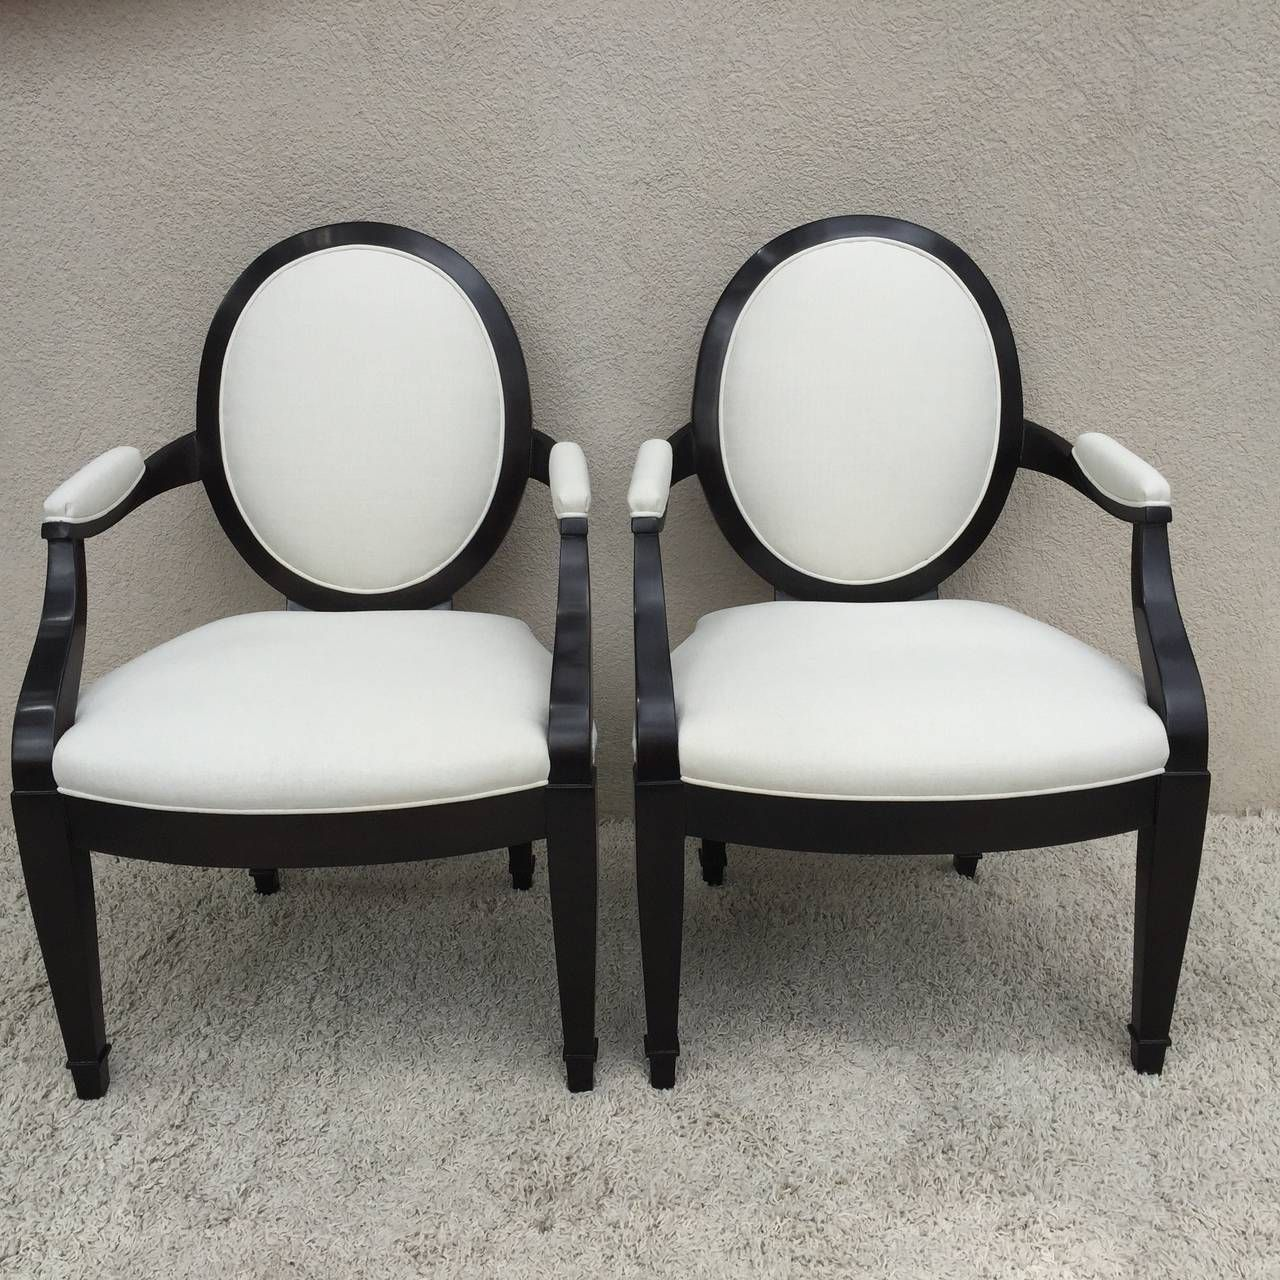 Ordinaire John Hutton For Donghia Set Of Six Chairs For Sale At 1stdibs